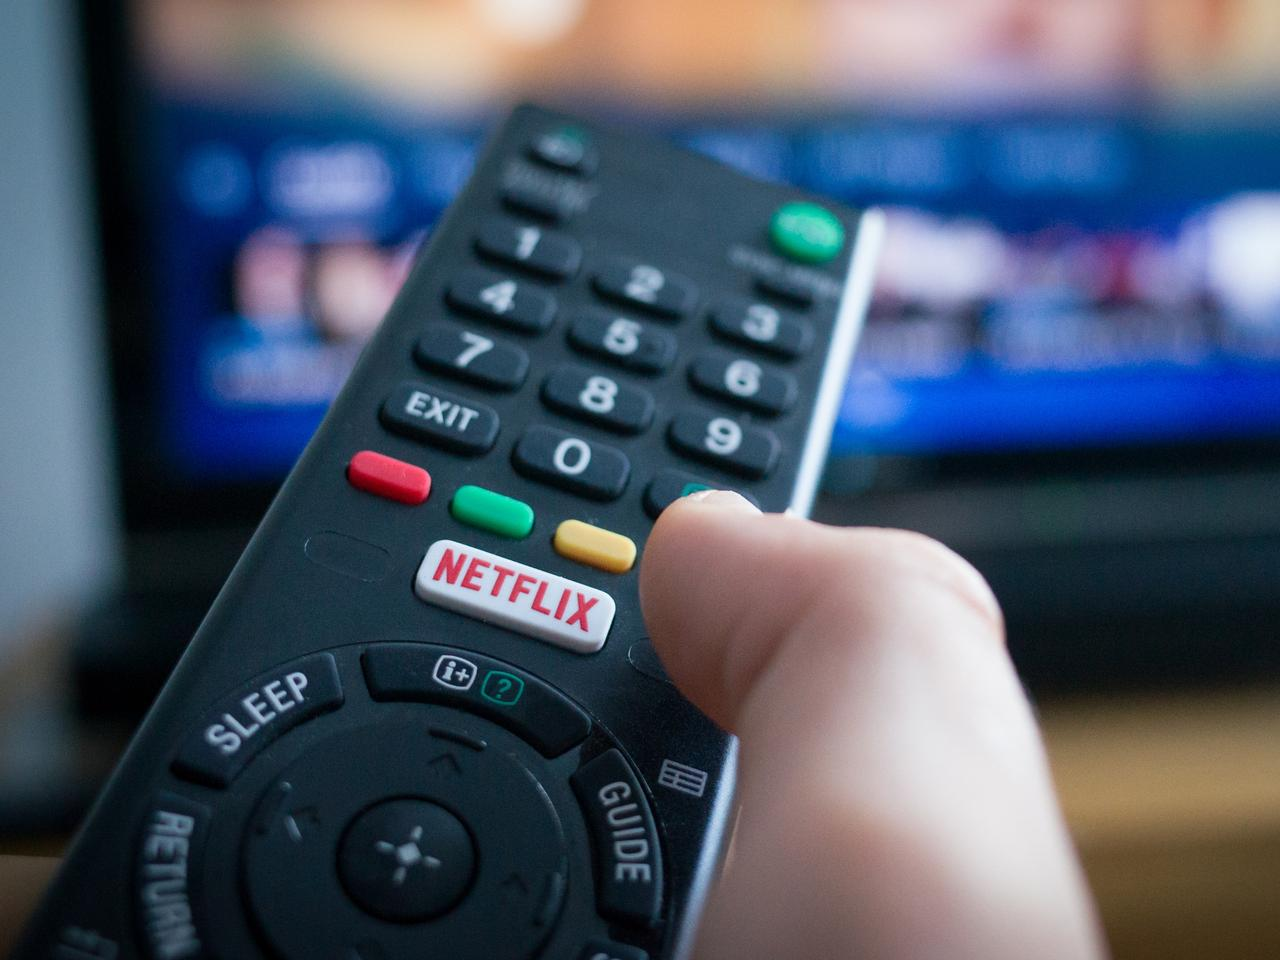 TV Remote Control with Netflix Button